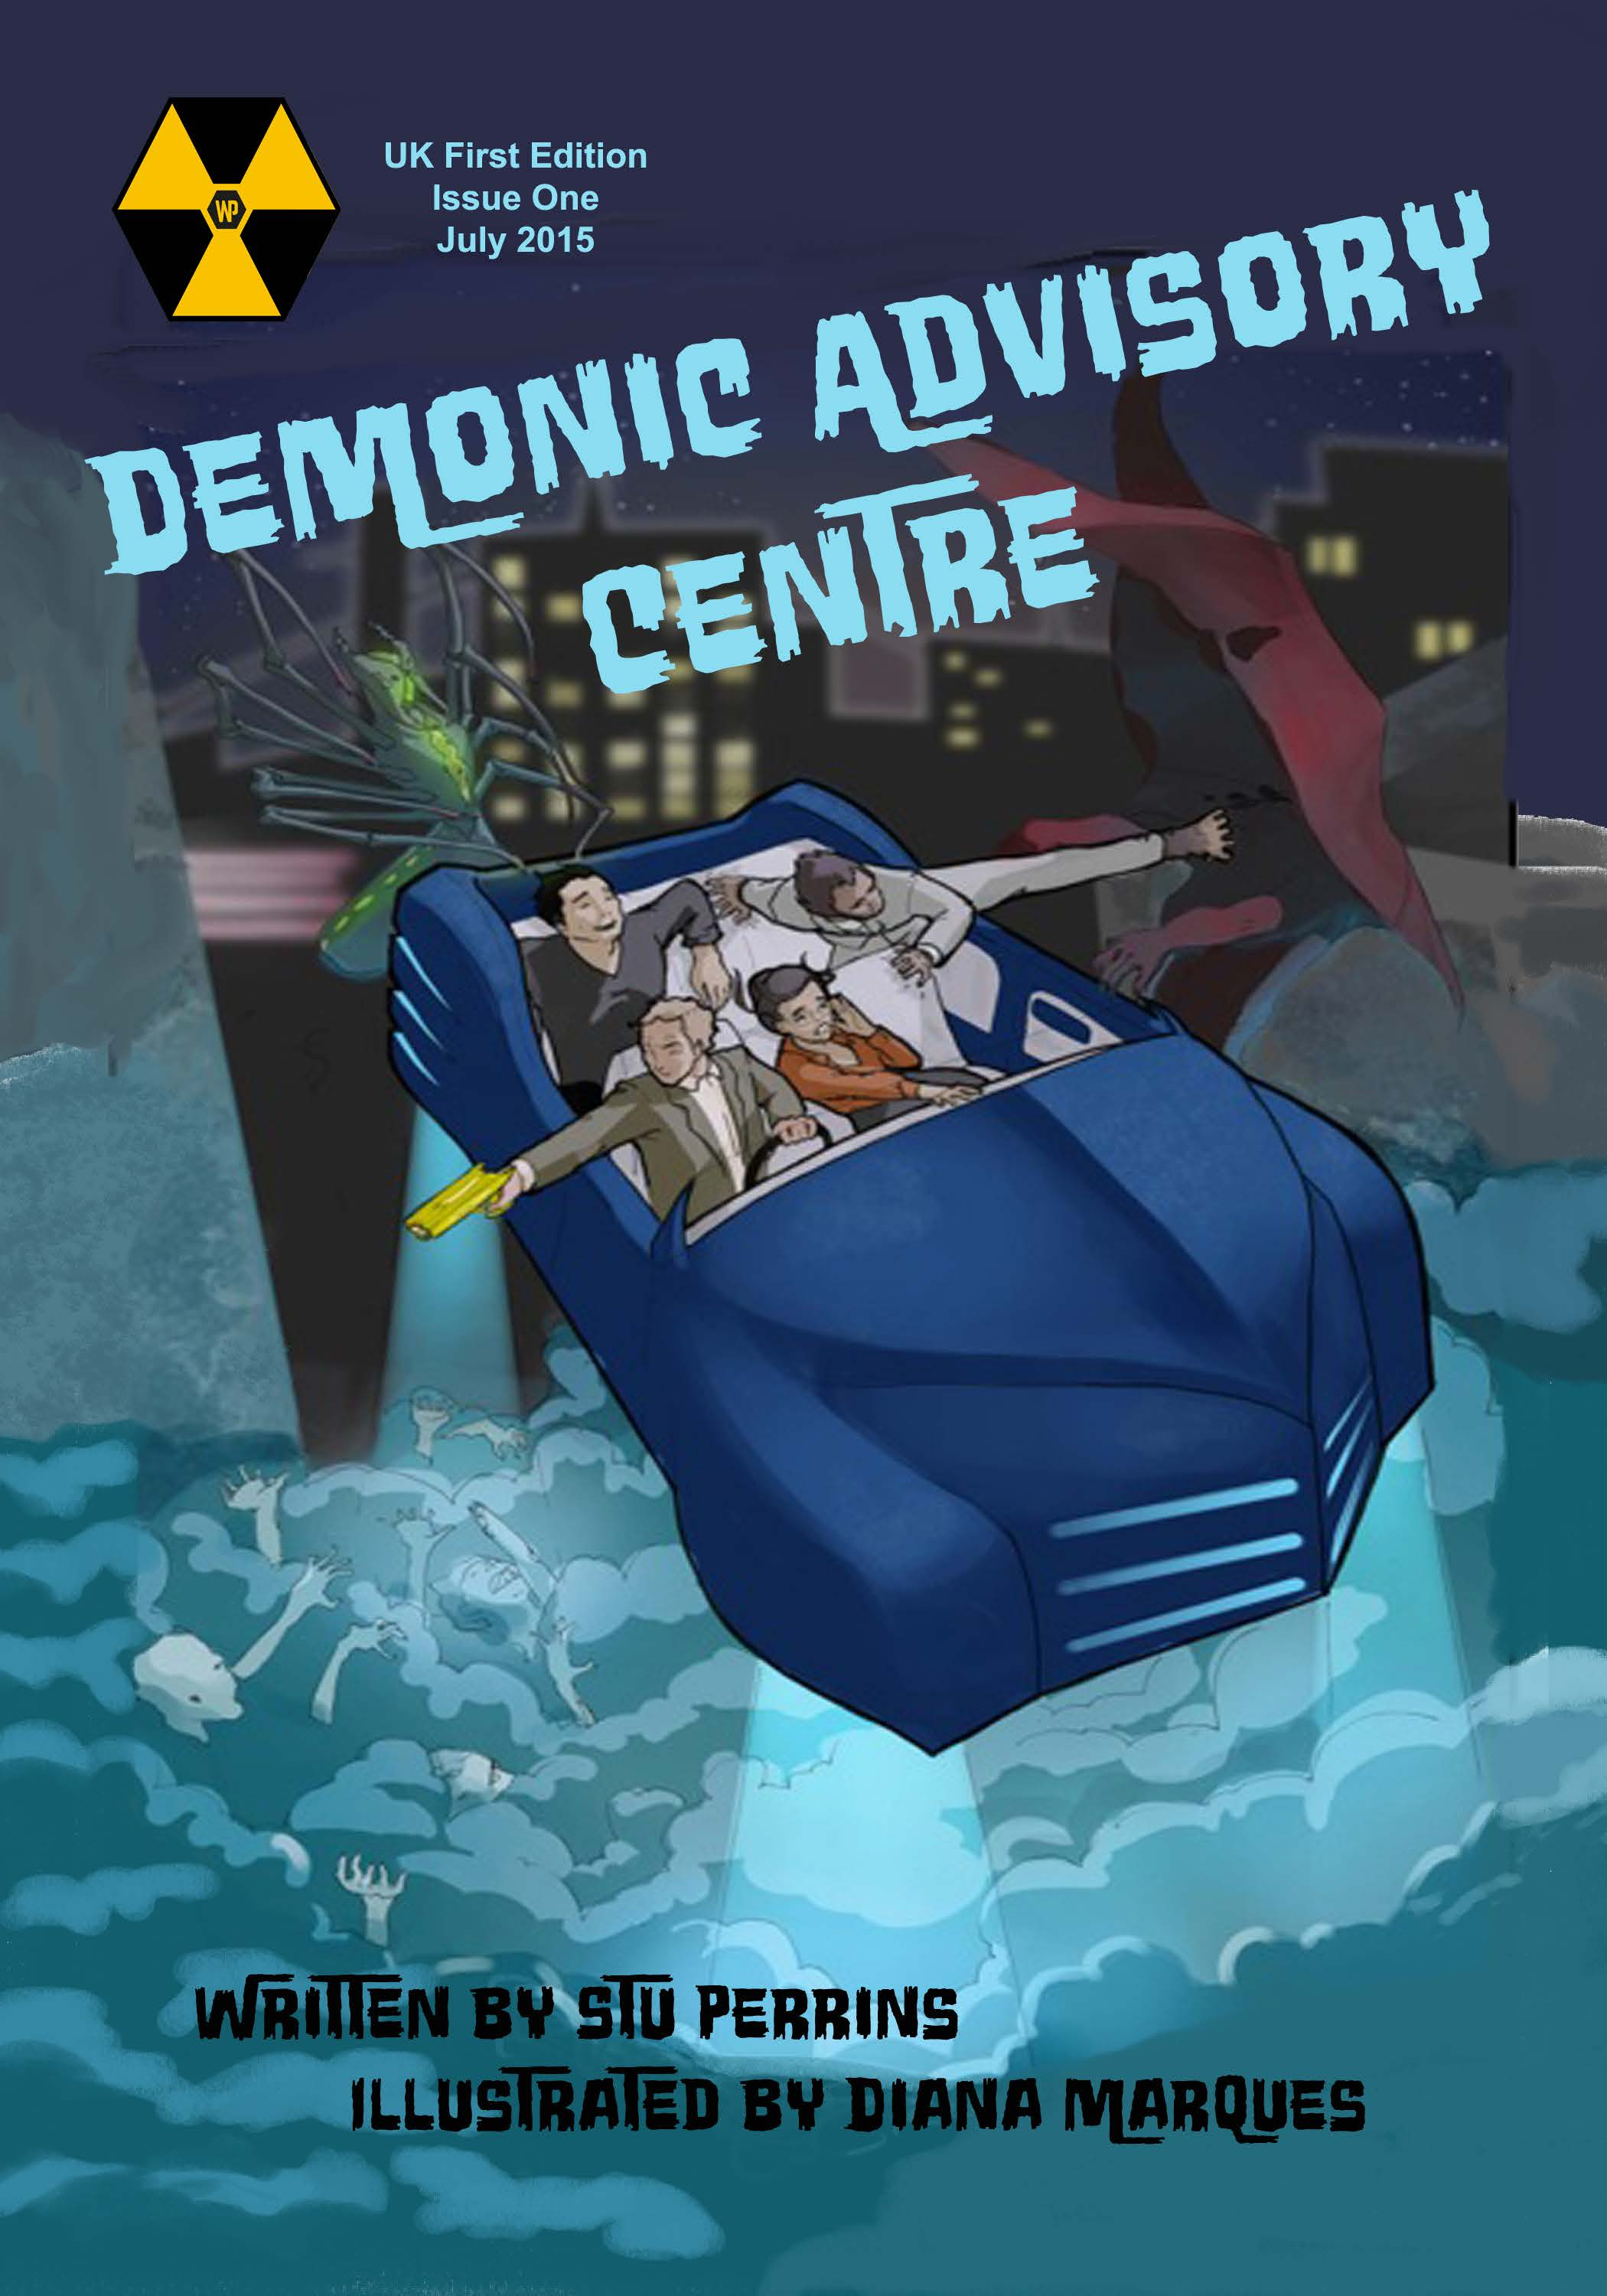 Demonic Advisory Centre #1 - Cover